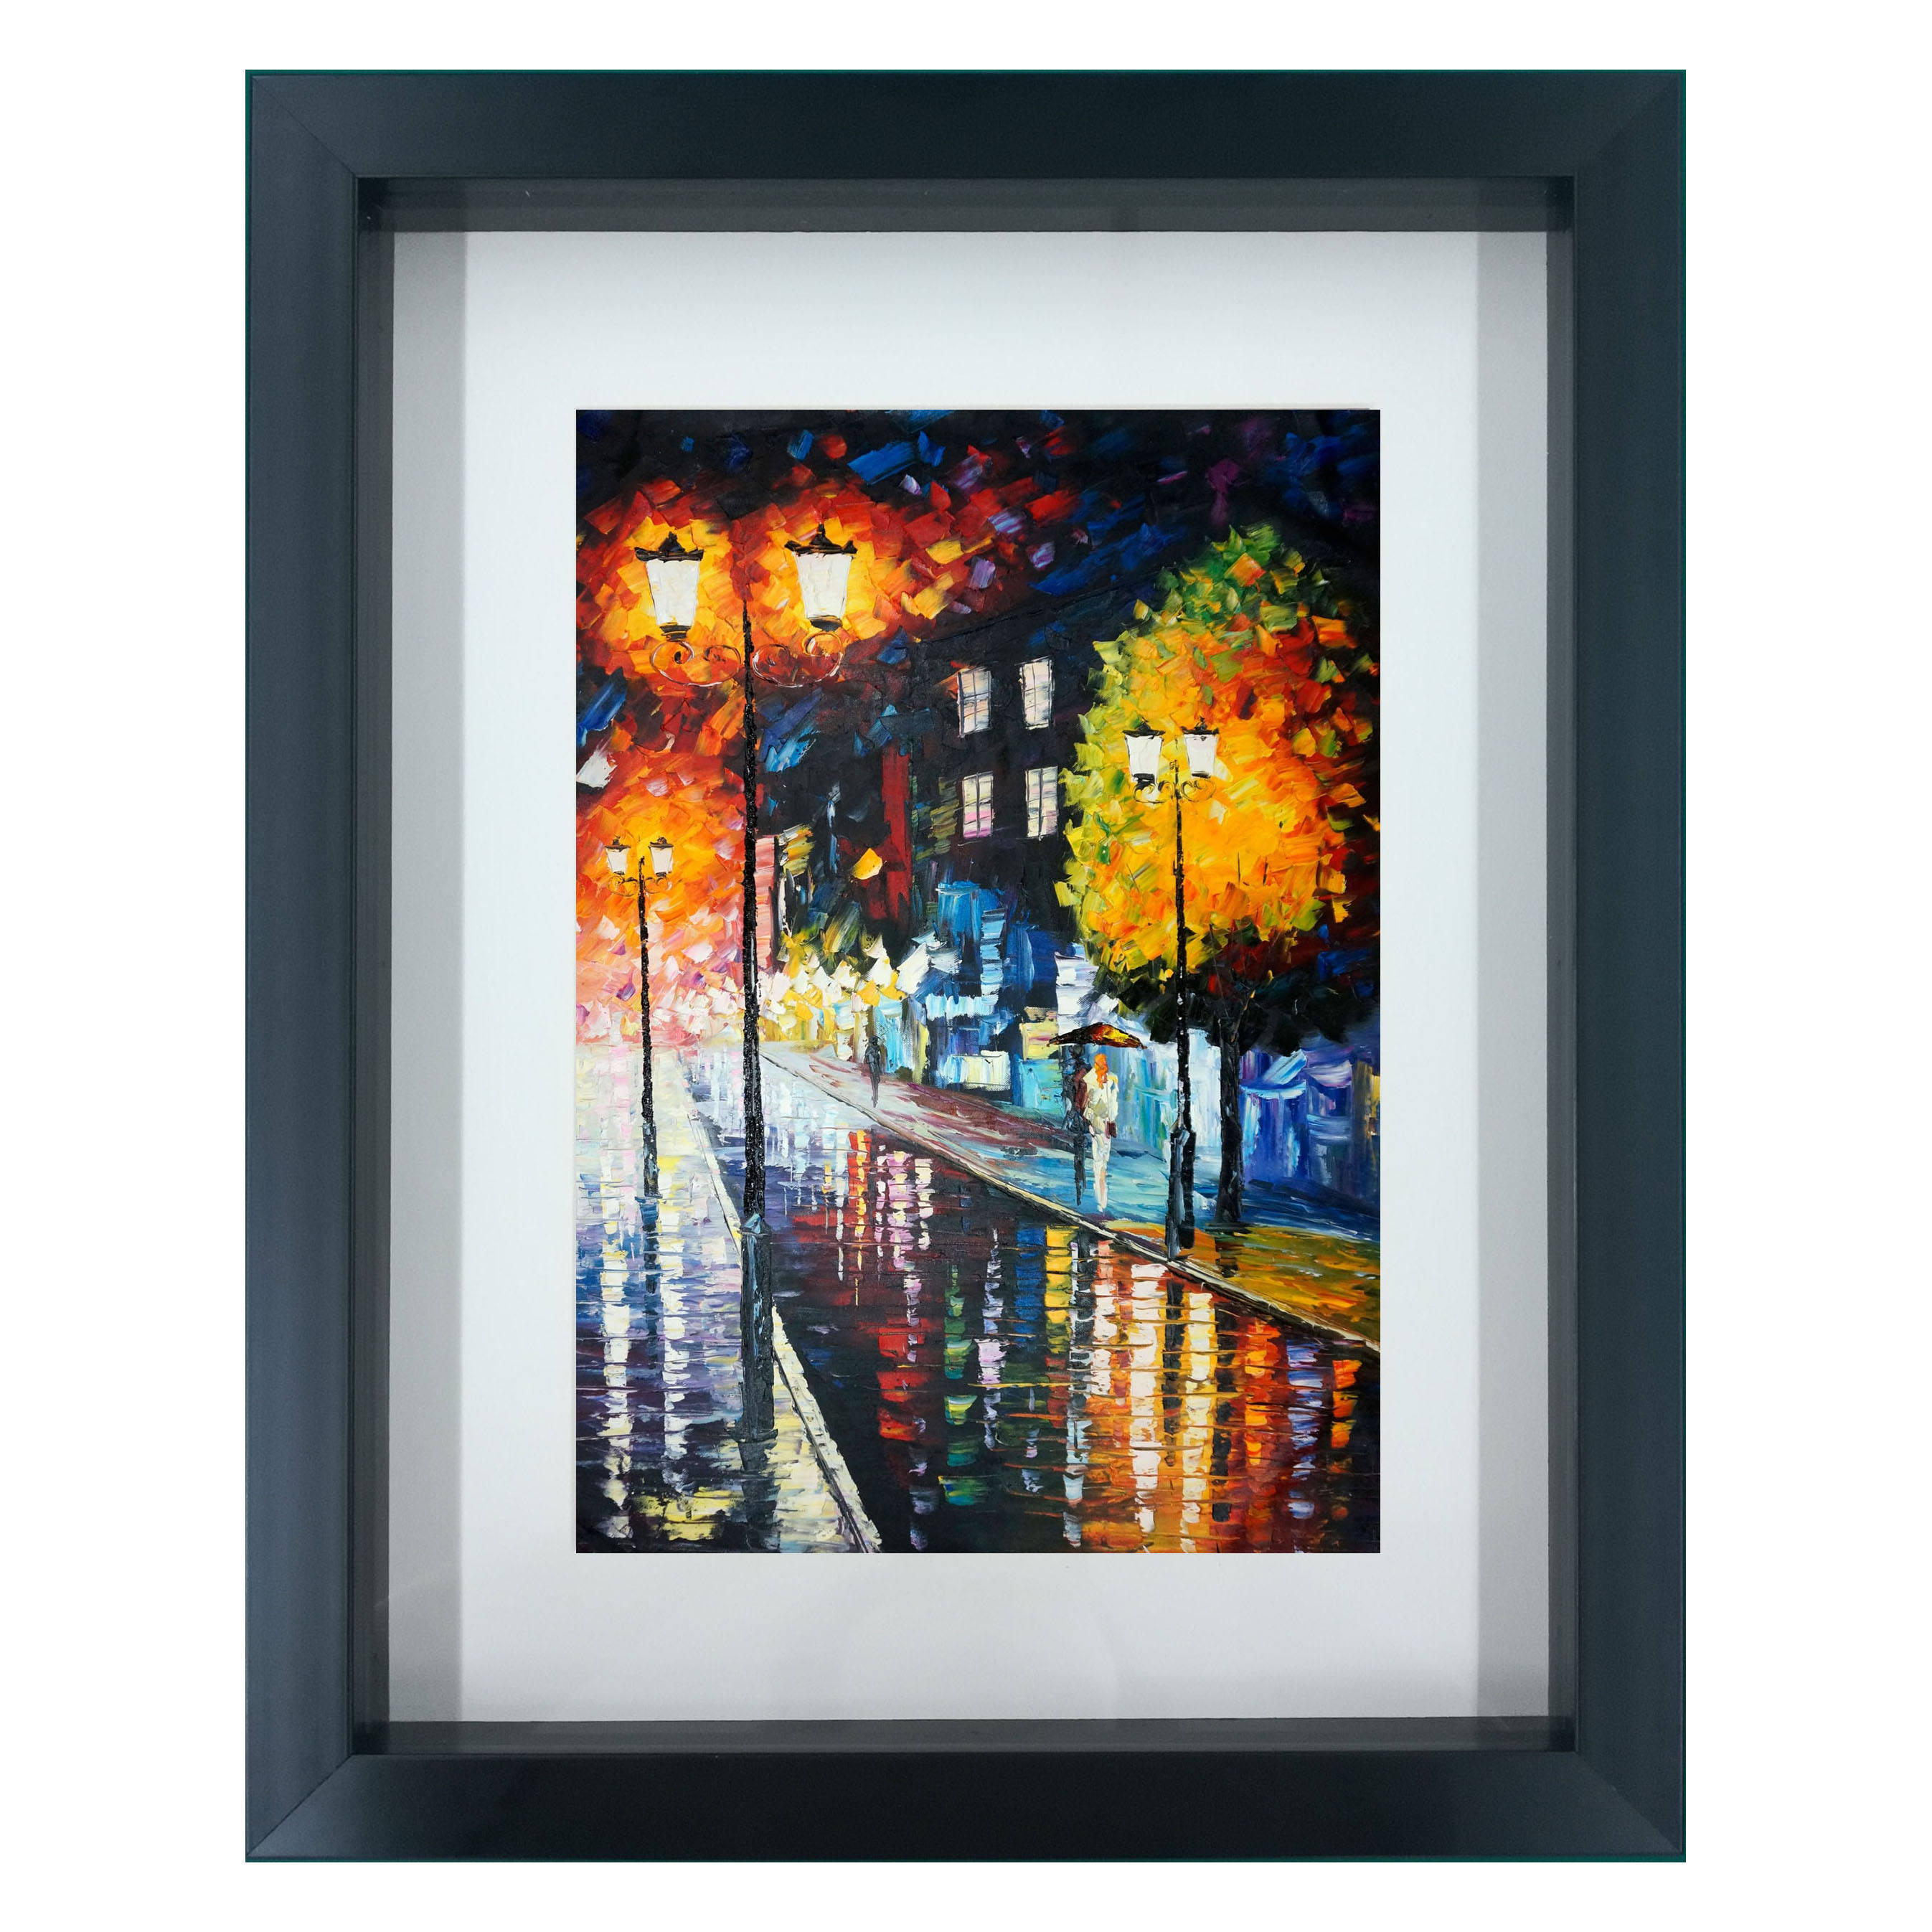 Custpmized HD Art Frame Picture on Canvas With PS Material 3D Shadow Box Frame Picture